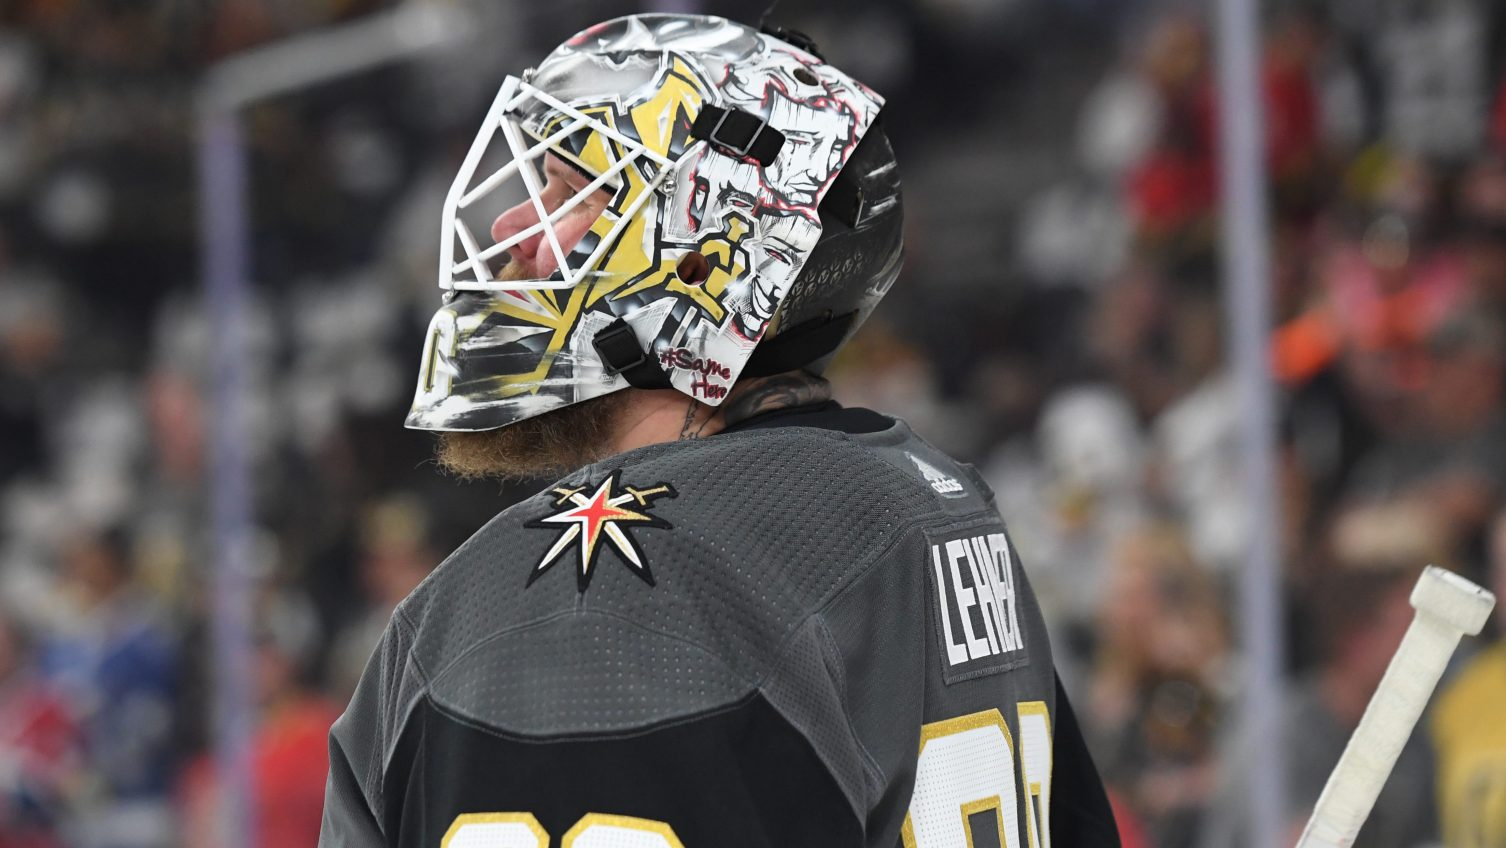 NHL reaches out to Lehner after social media accusations